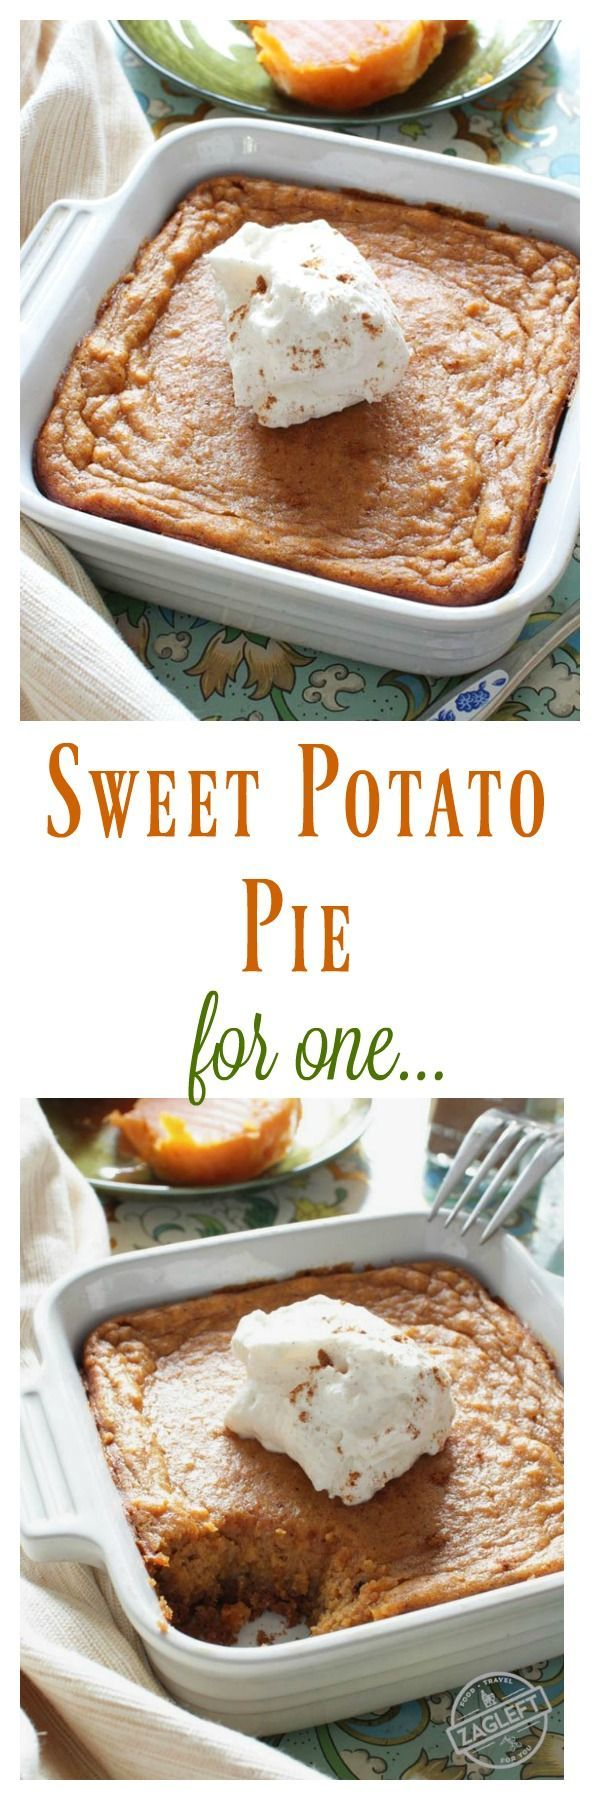 Sweet Potato Pie For One – This popular Southern dessert starts with a buttery graham cracker crust and is filled with perfectly spiced sweet potato custard. Top this tasty pie with a spoonful of mapl (Sweet Recipes For One)